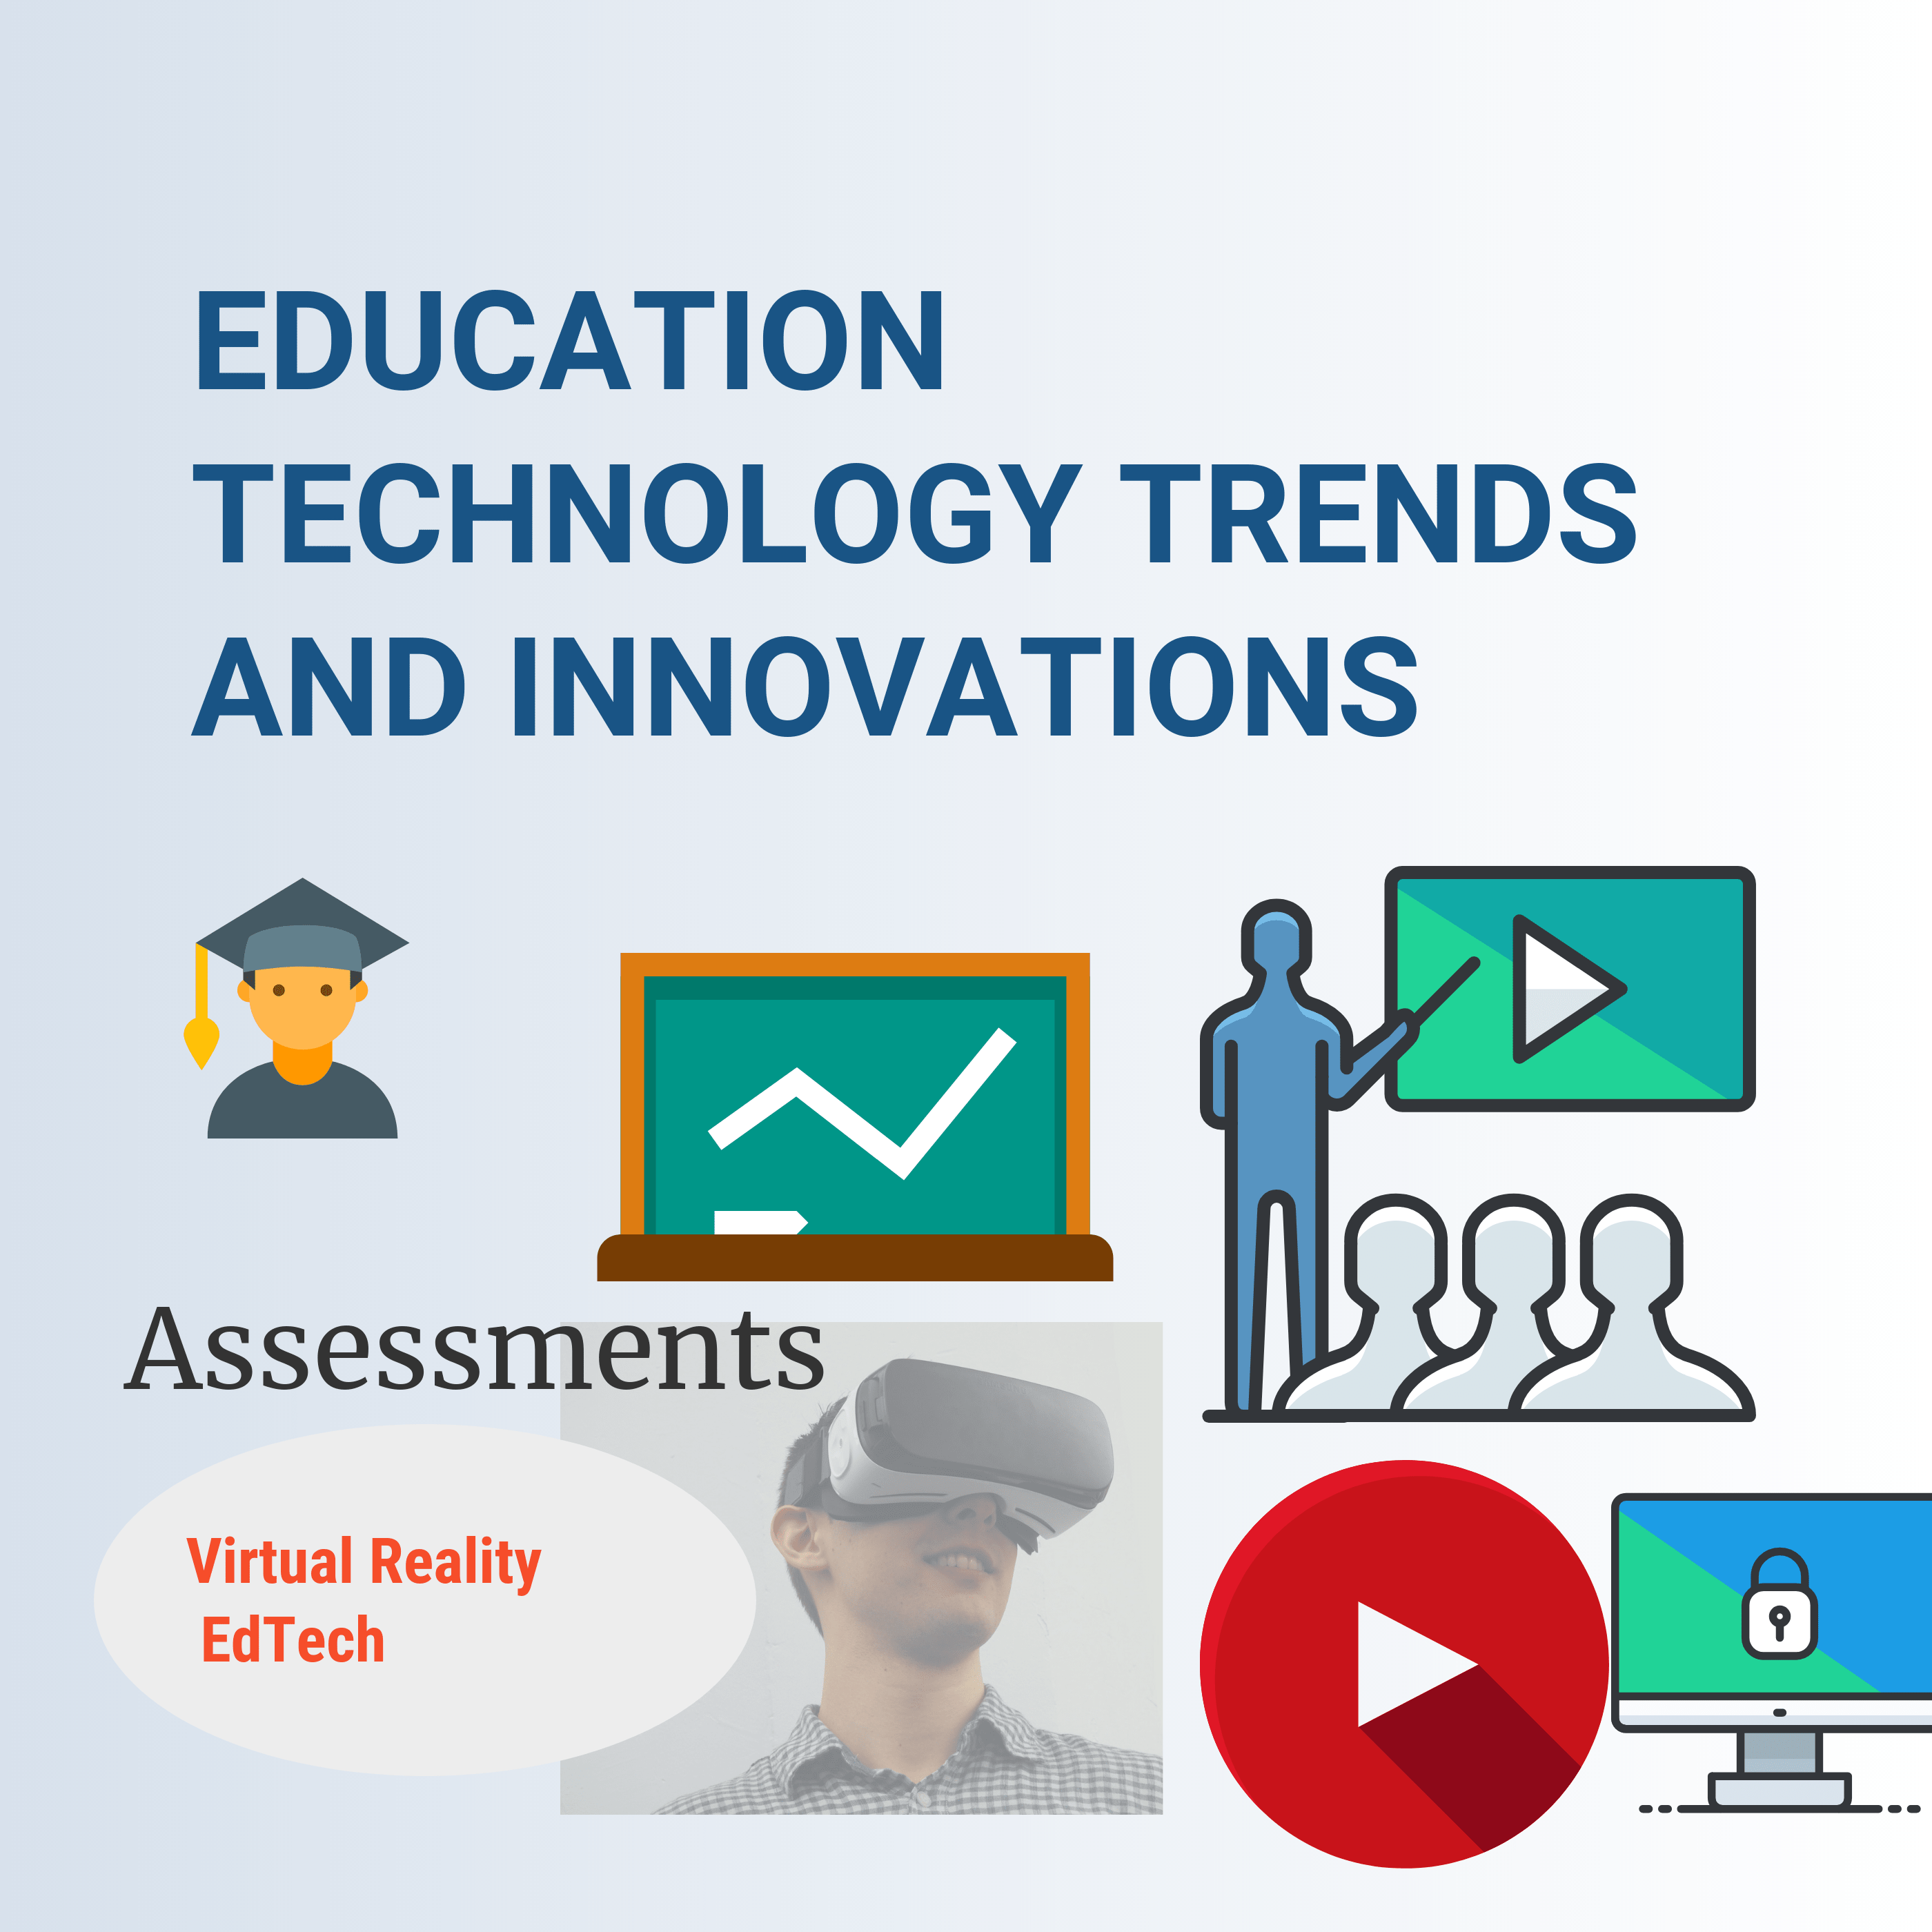 Trends In Education 2020.Top 10 Higher Education Education Technology Trends For 2020